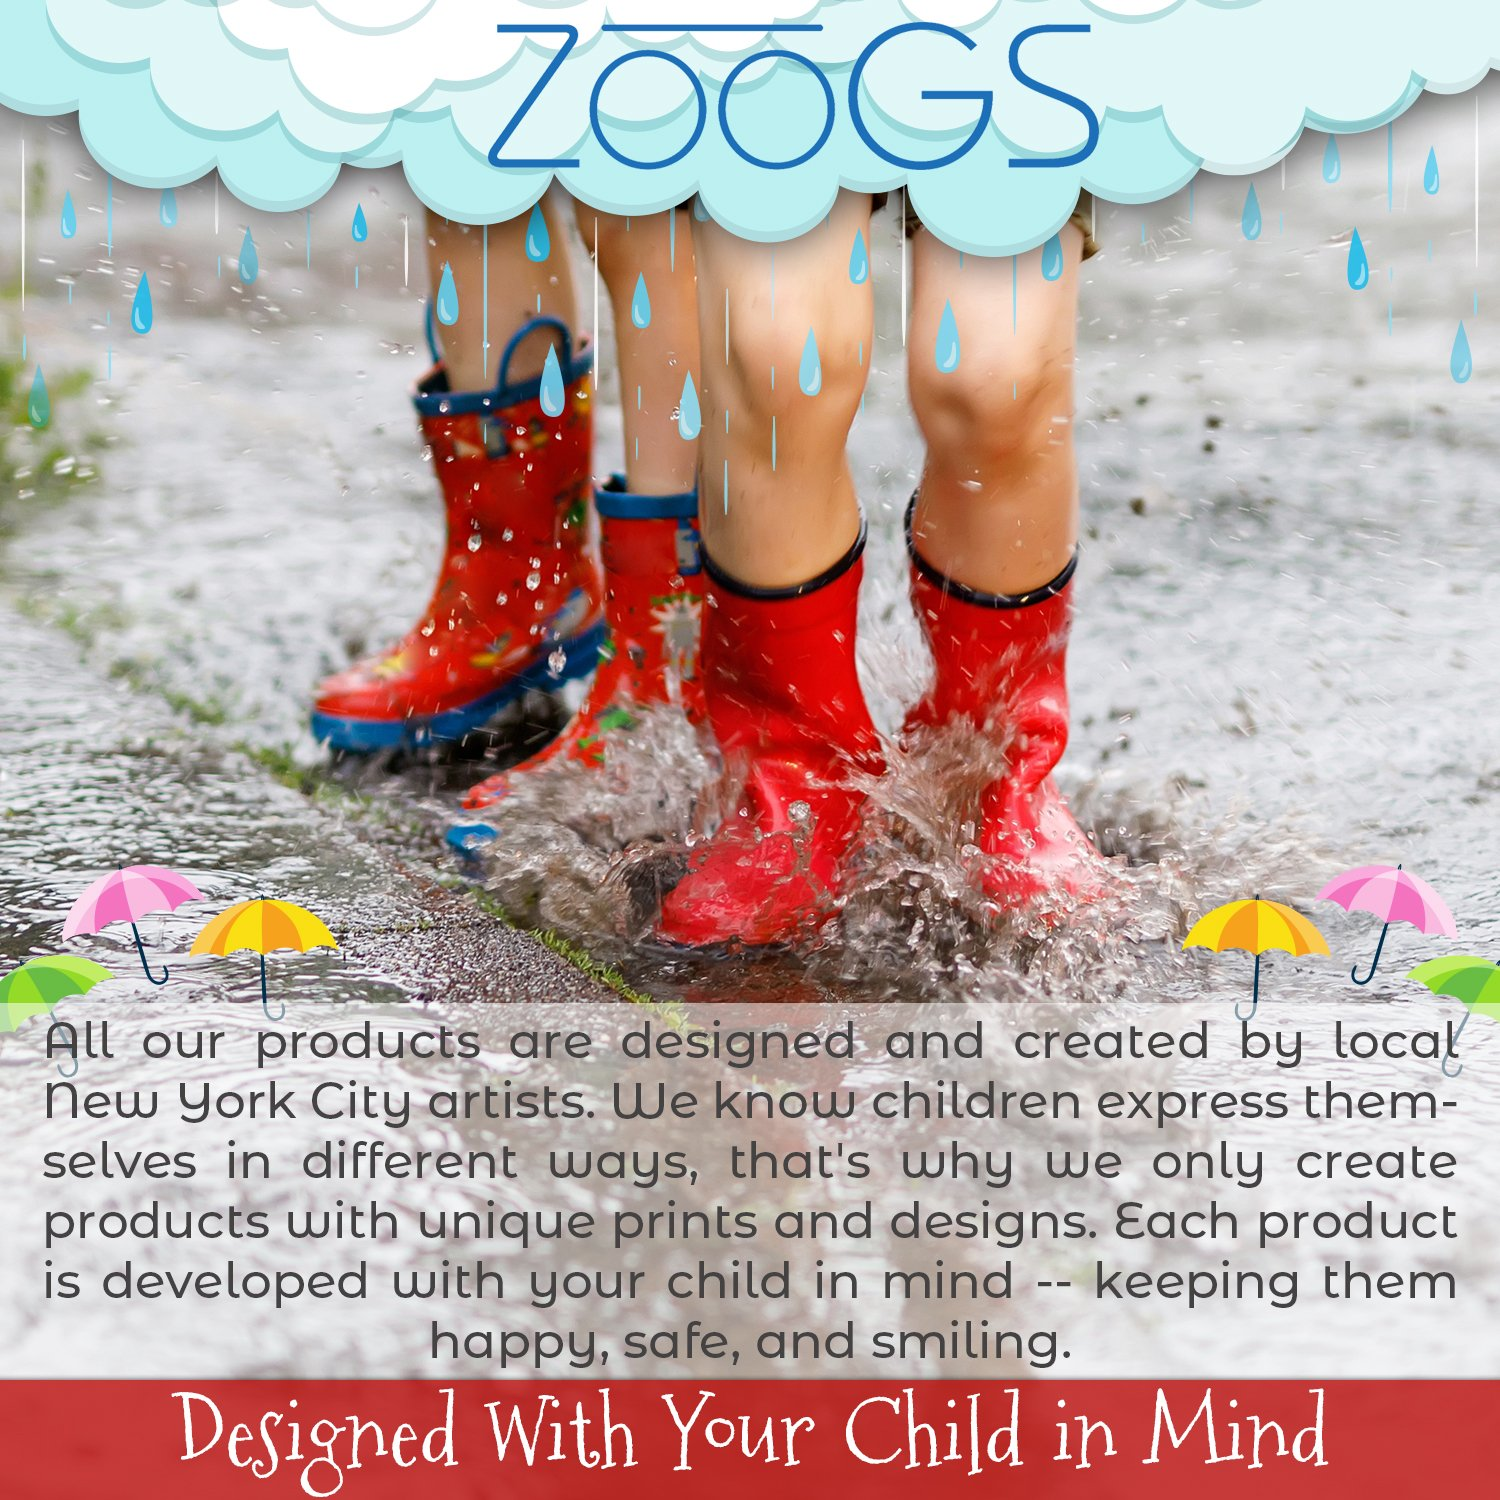 ZOOGS Children's Rubber Rain Boots, Little Kids & Toddler, Boys & Girls Patterns by ZOOGS (Image #8)